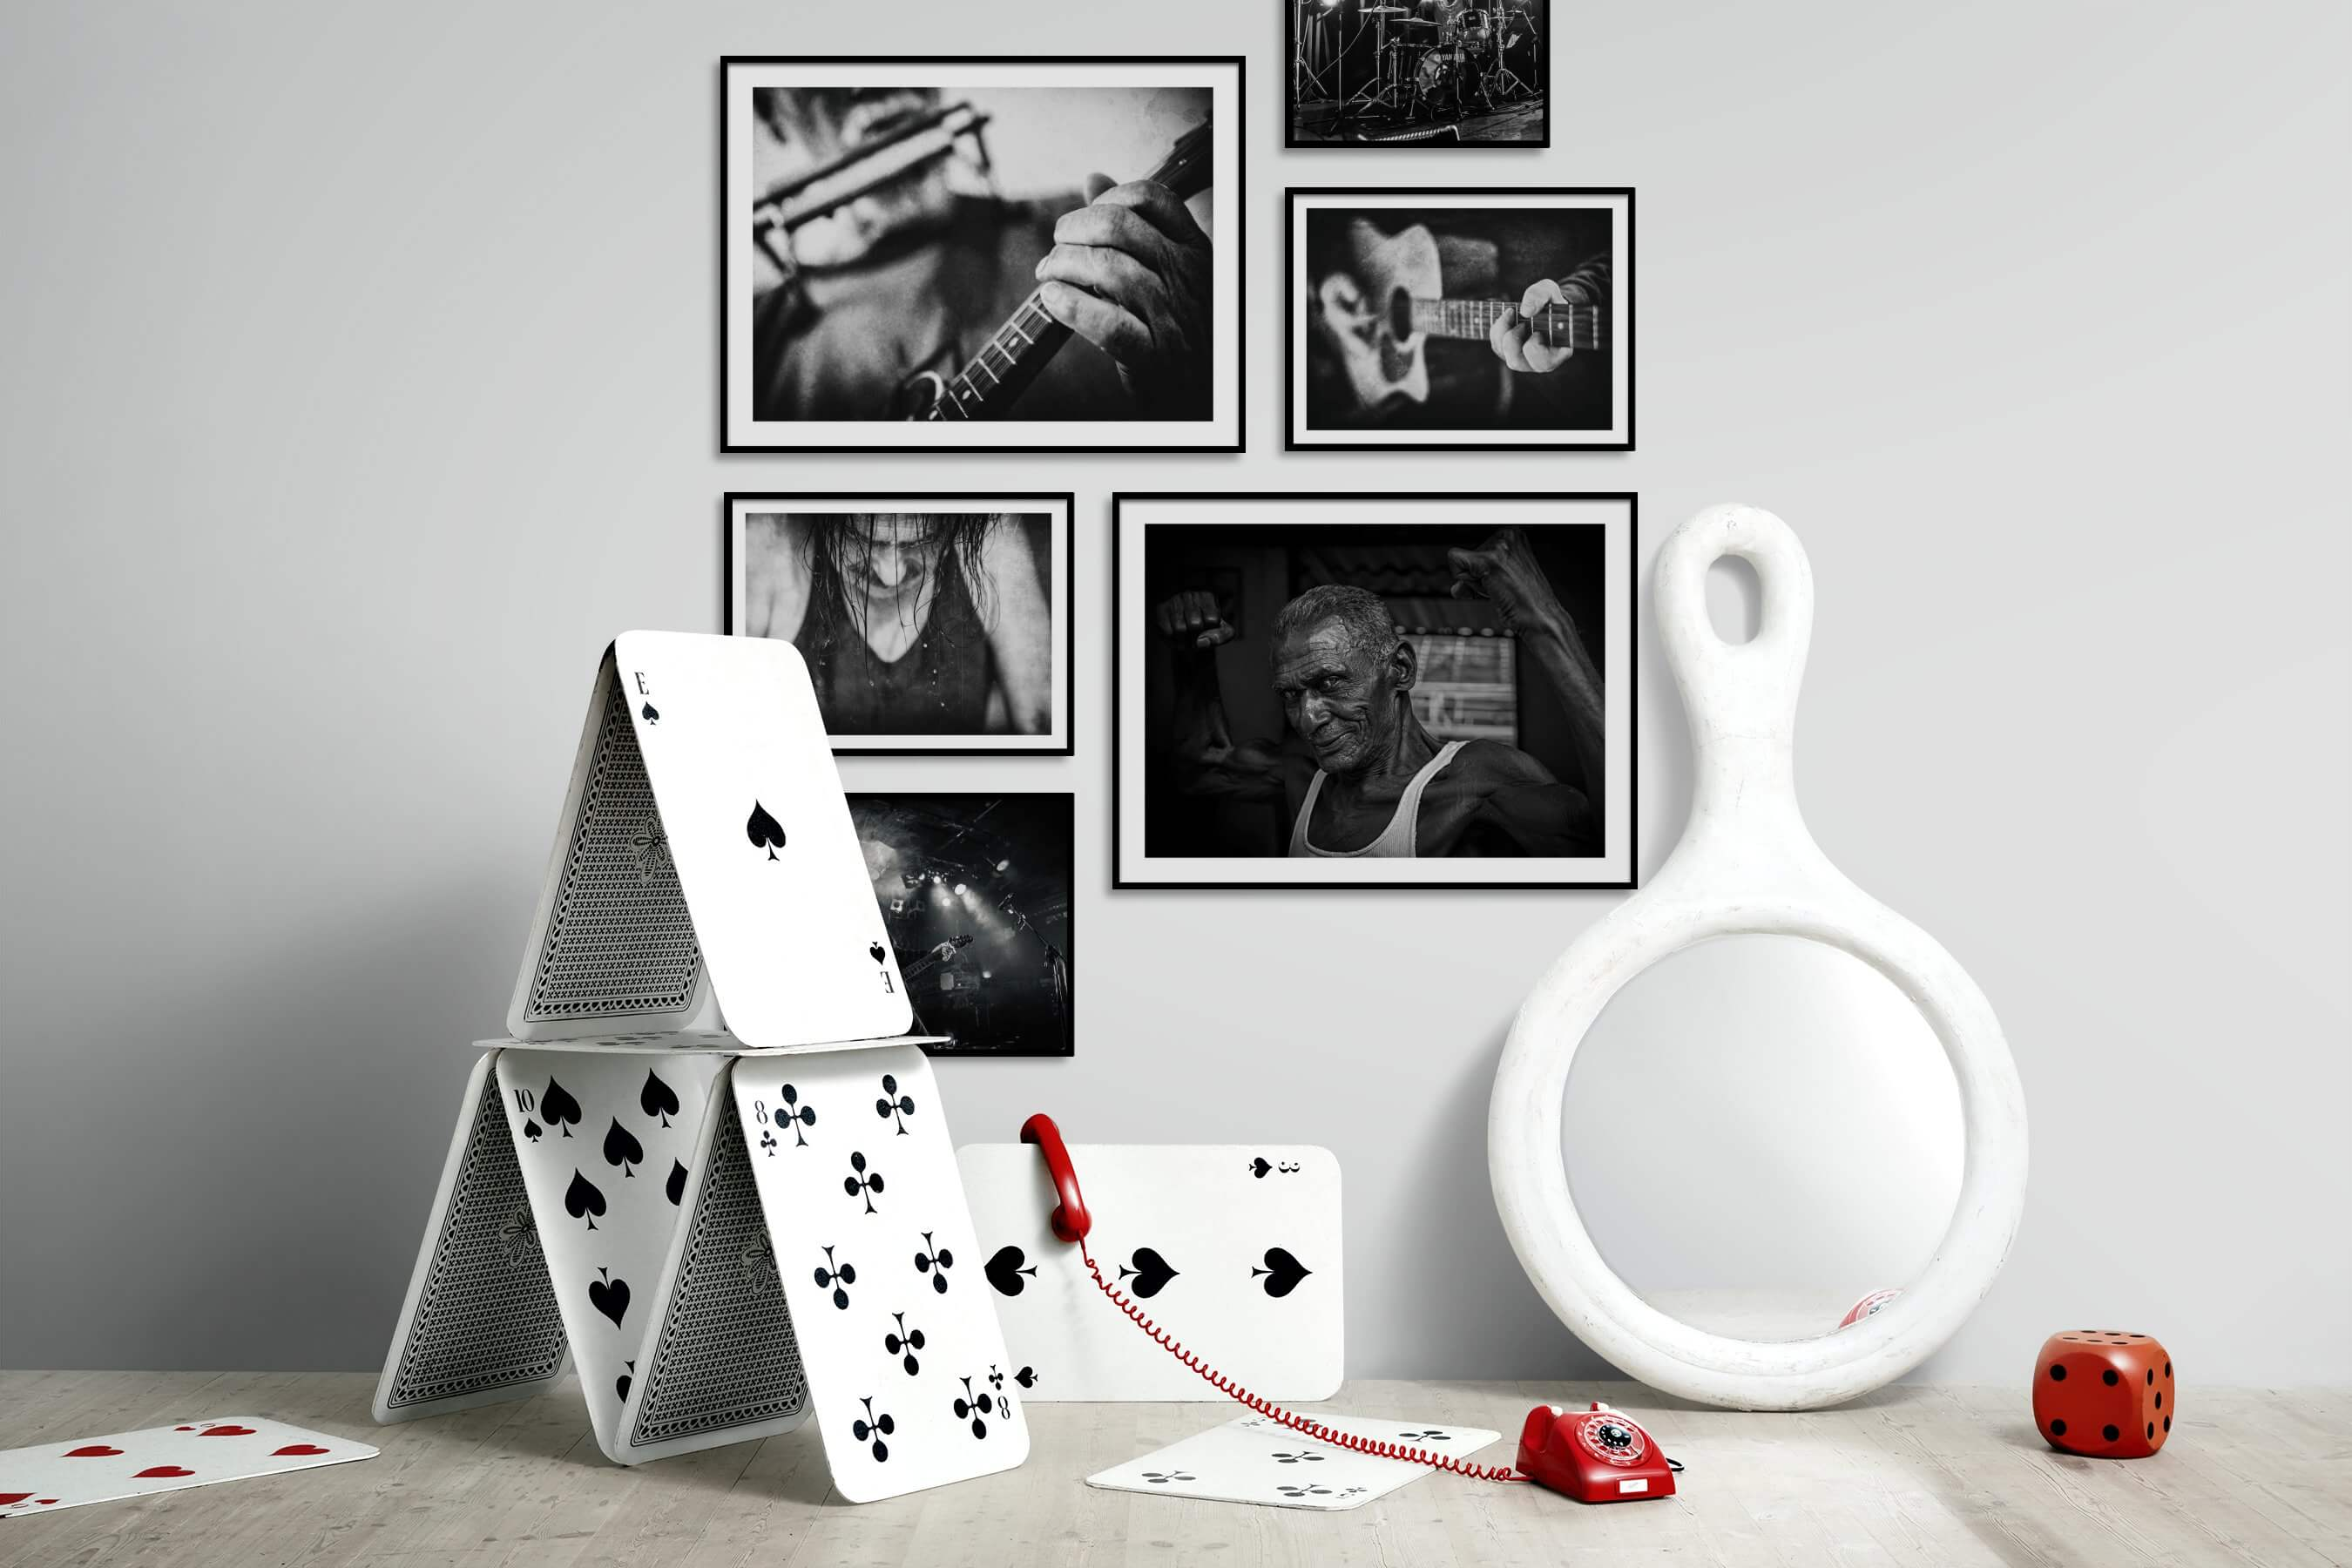 Gallery wall idea with six framed pictures arranged on a wall depicting Black & White and Fashion & Beauty